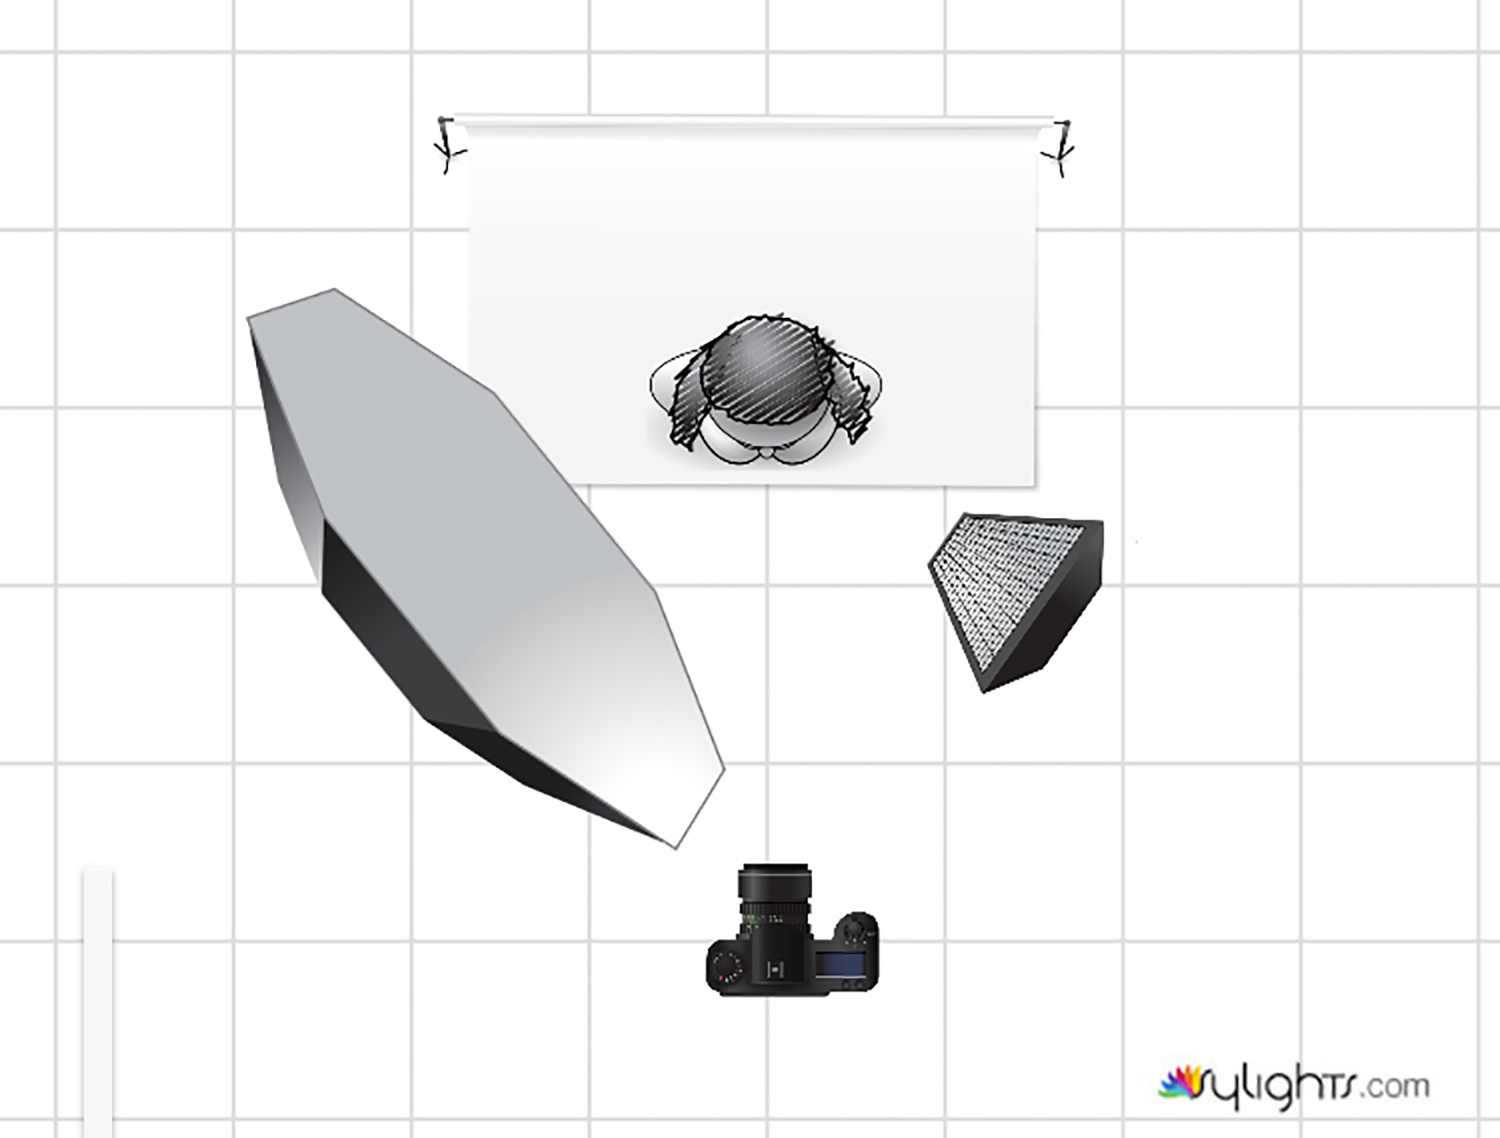 lighting diagram - Why I've Become a Light Meter Convert